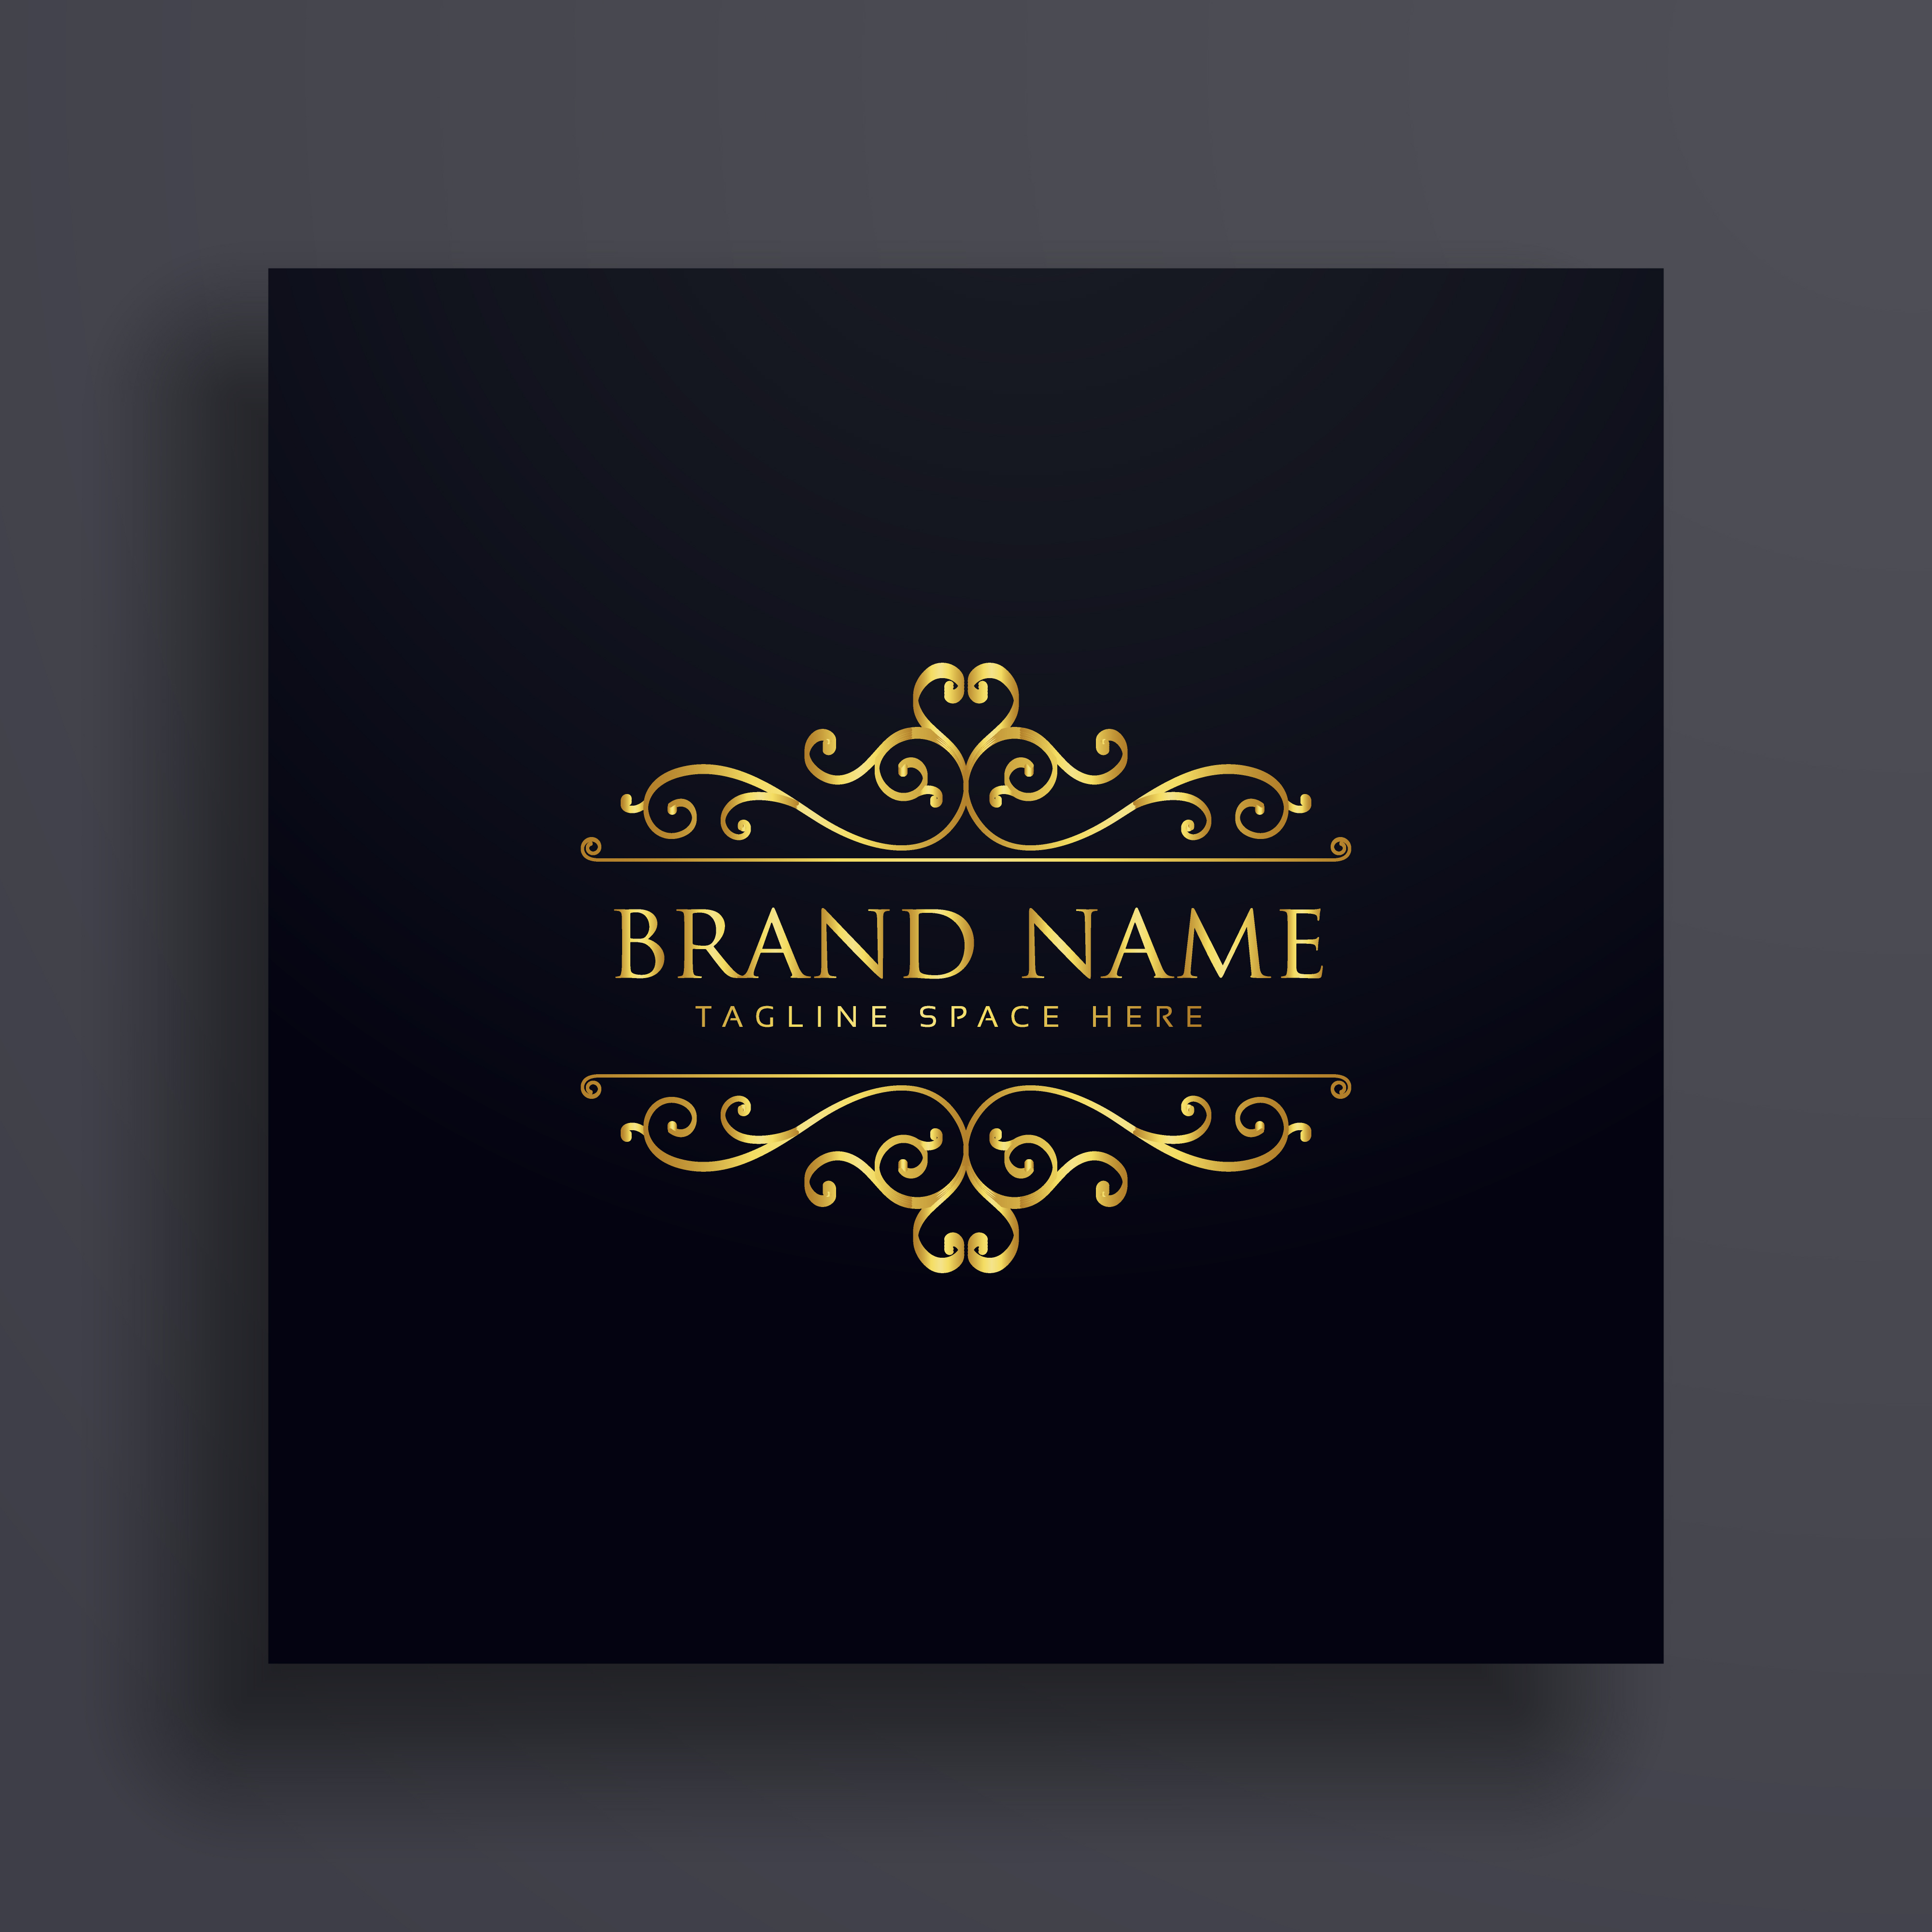 luxury vip logo concept design for your brand with floral